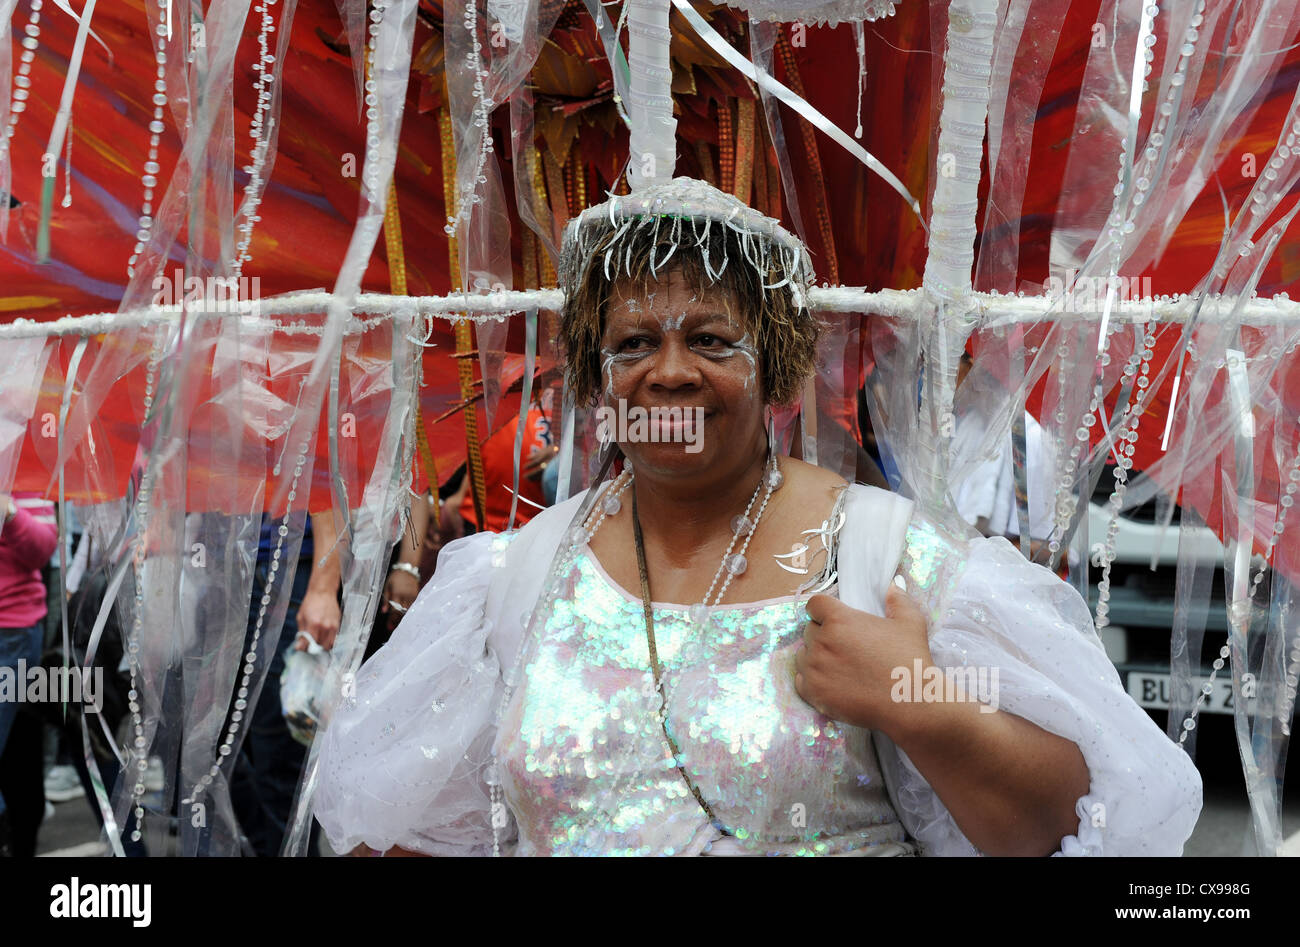 Woman in costume at Notting Hill Carnival on Monday 27th August 2012. - Stock Image